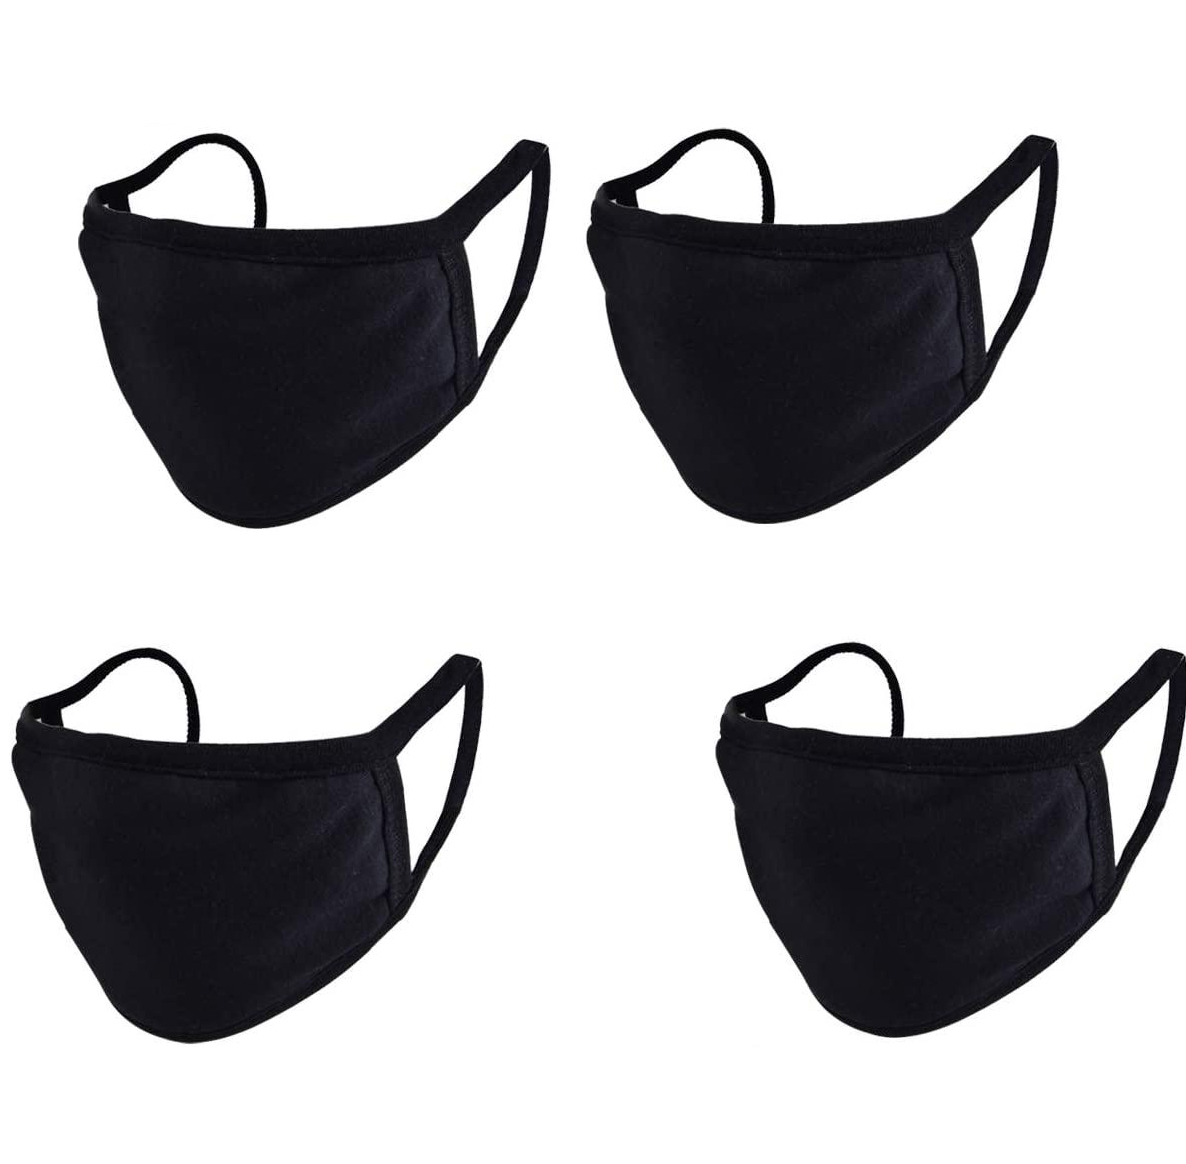 100% Cotton Black Face mask - Plain